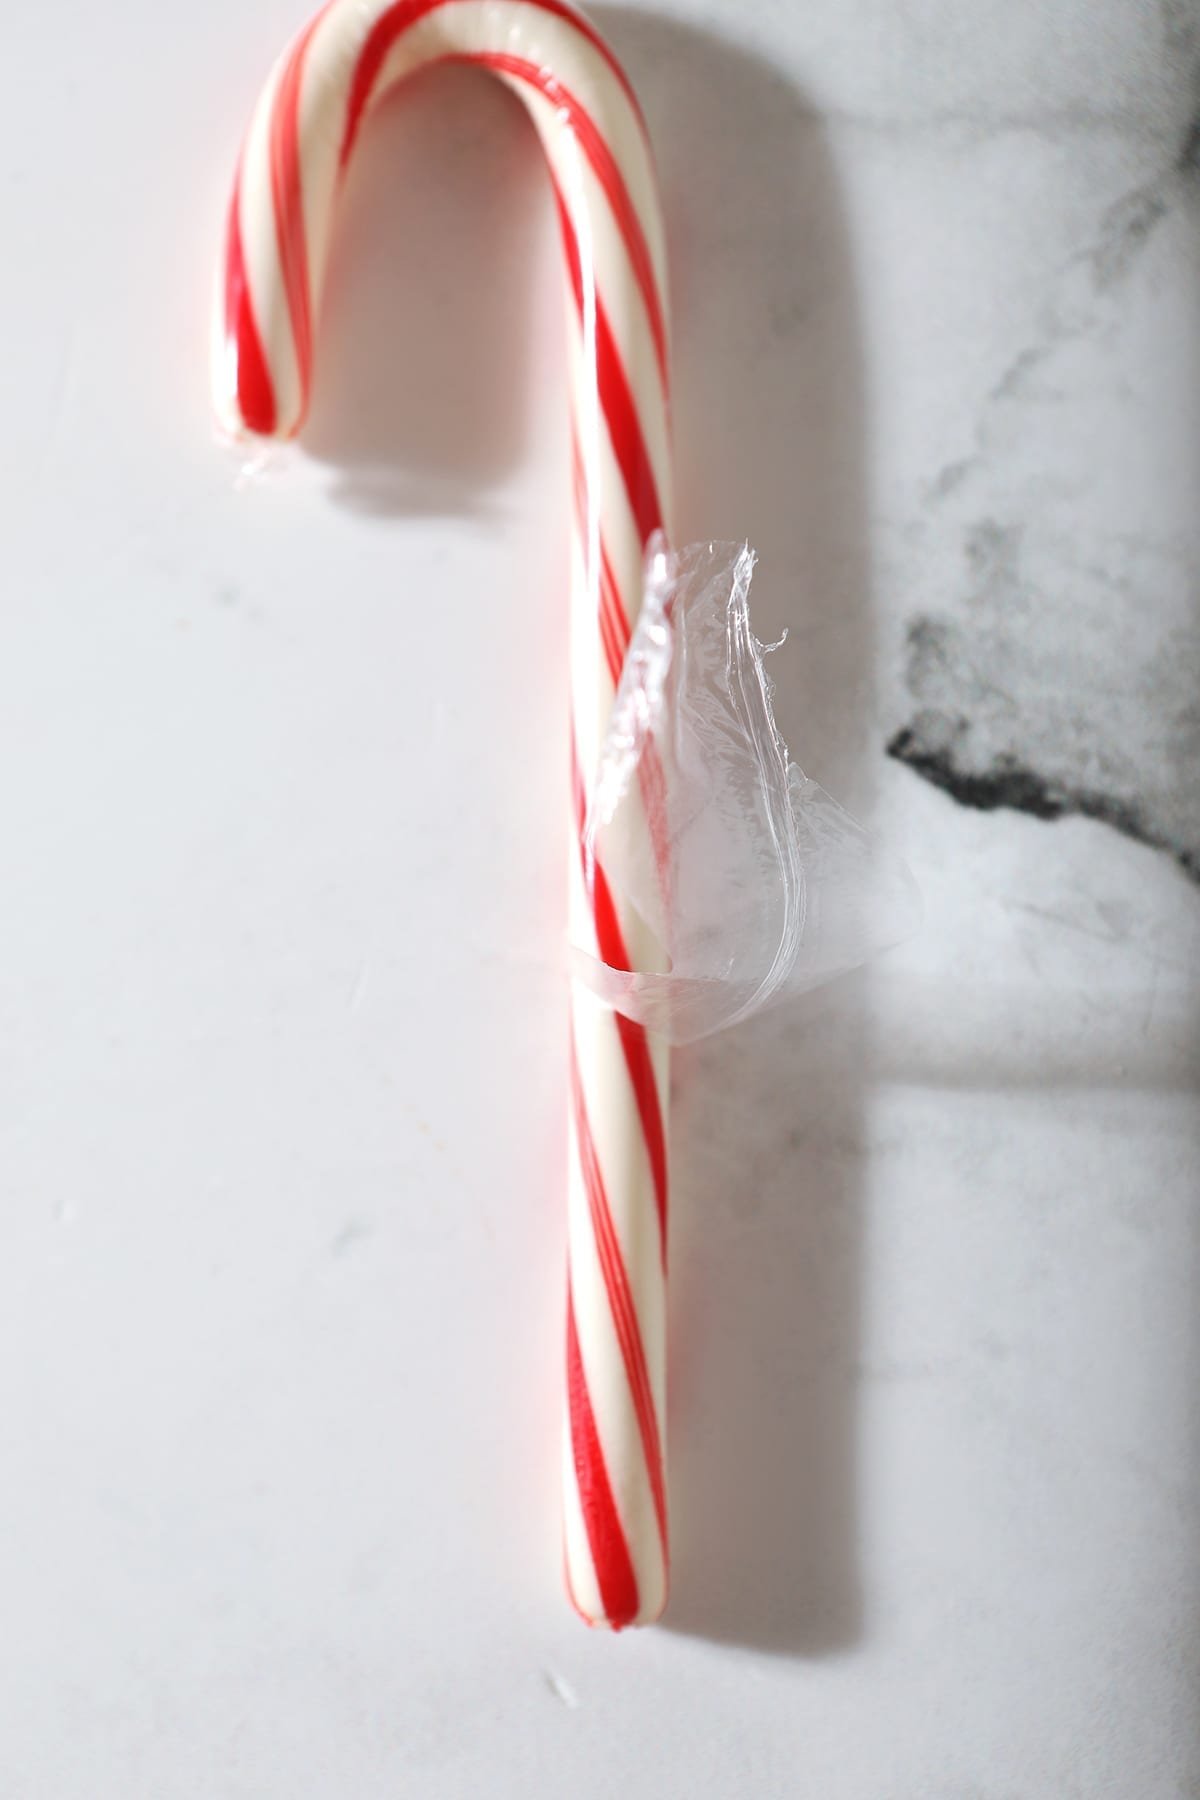 Close up of a half-peeled candy cane on marble